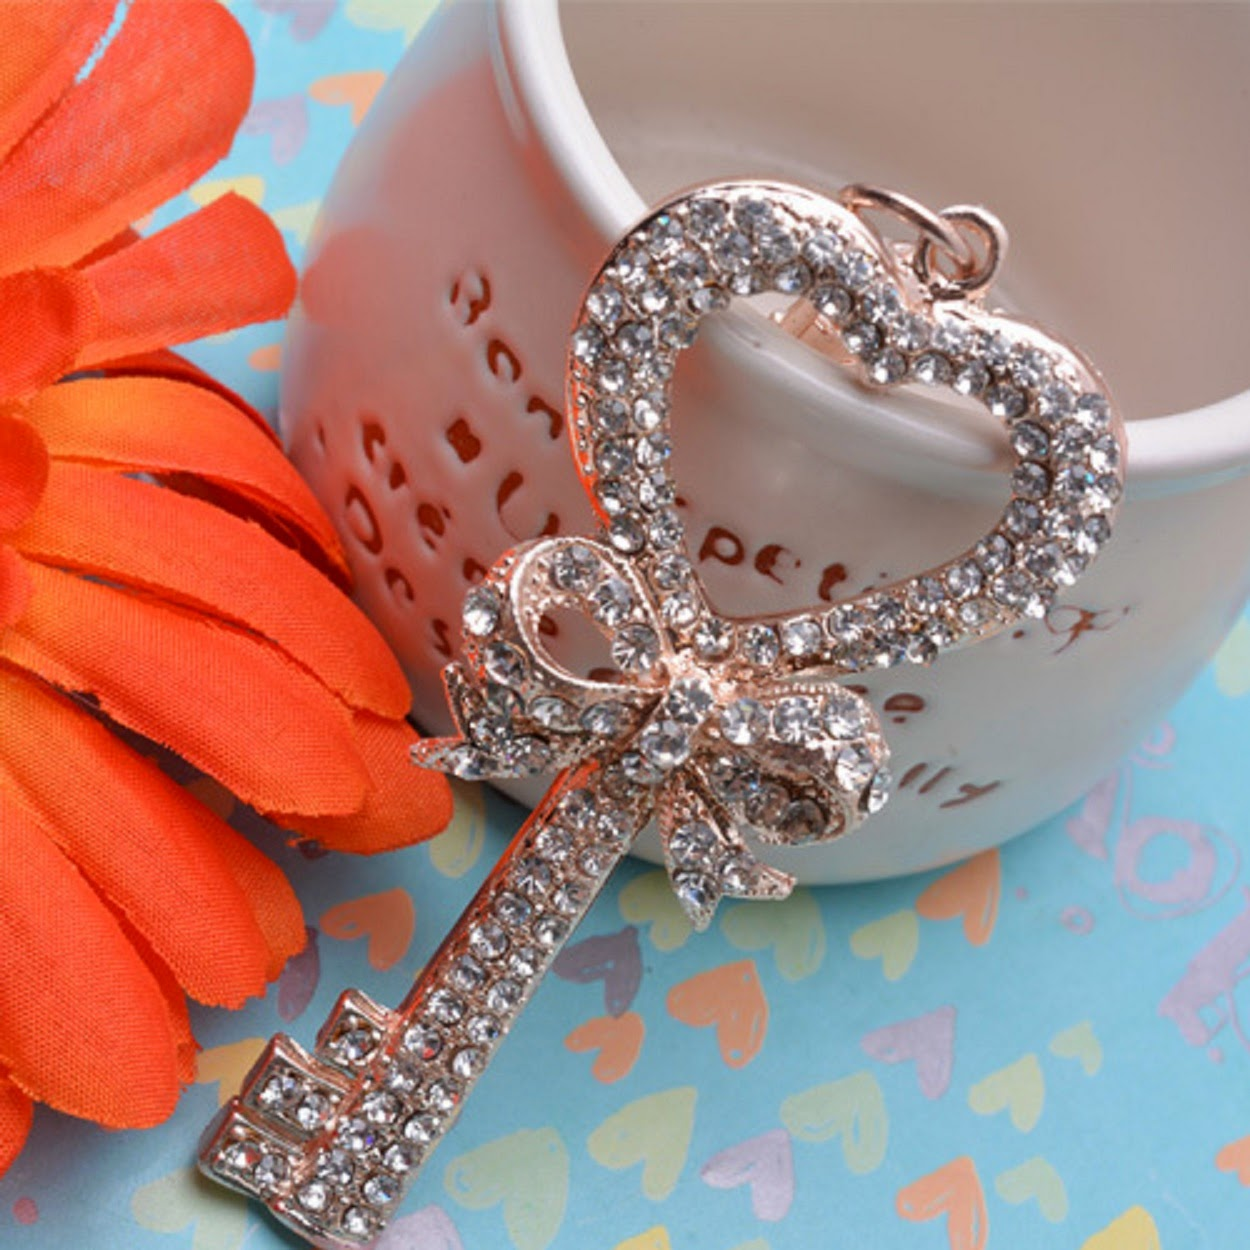 Love Keychain Wallpaper : Love Keychains HD Wallpaper Free My Another Blog